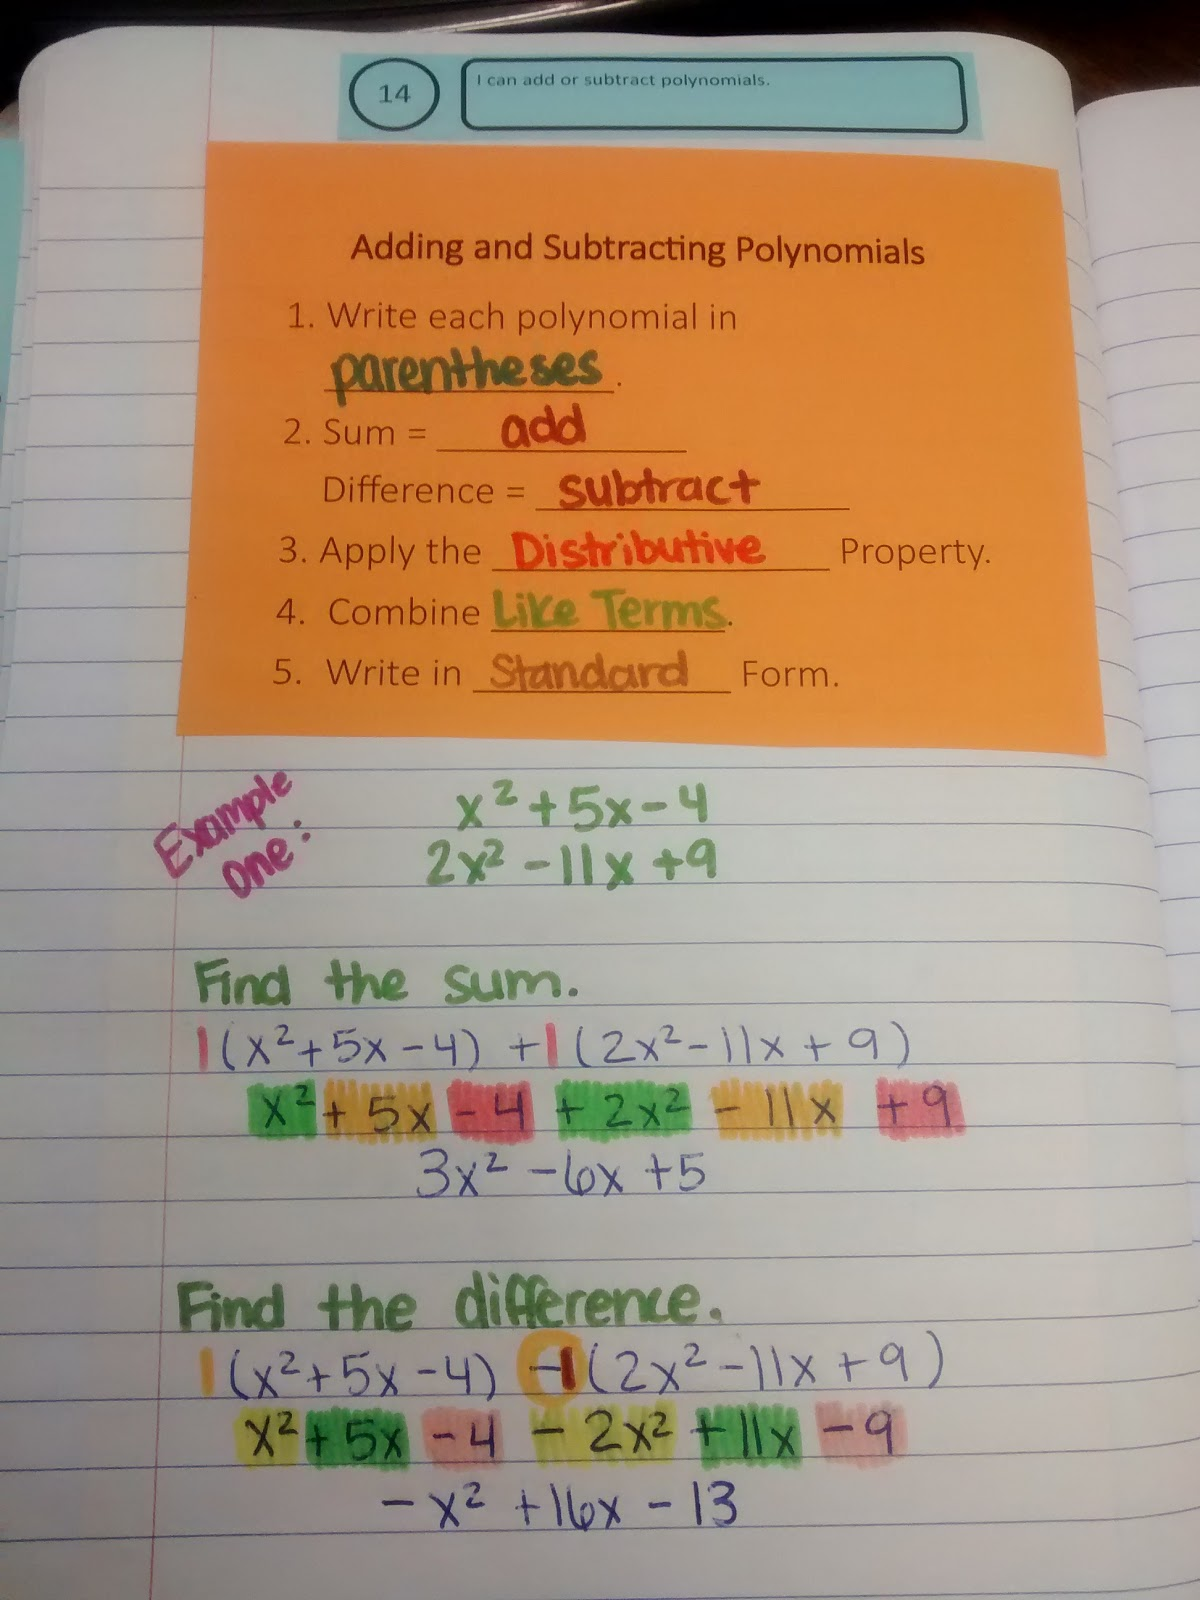 worksheet Adding And Subtracting Polynomials math love adding and subtracting polynomials notes notes